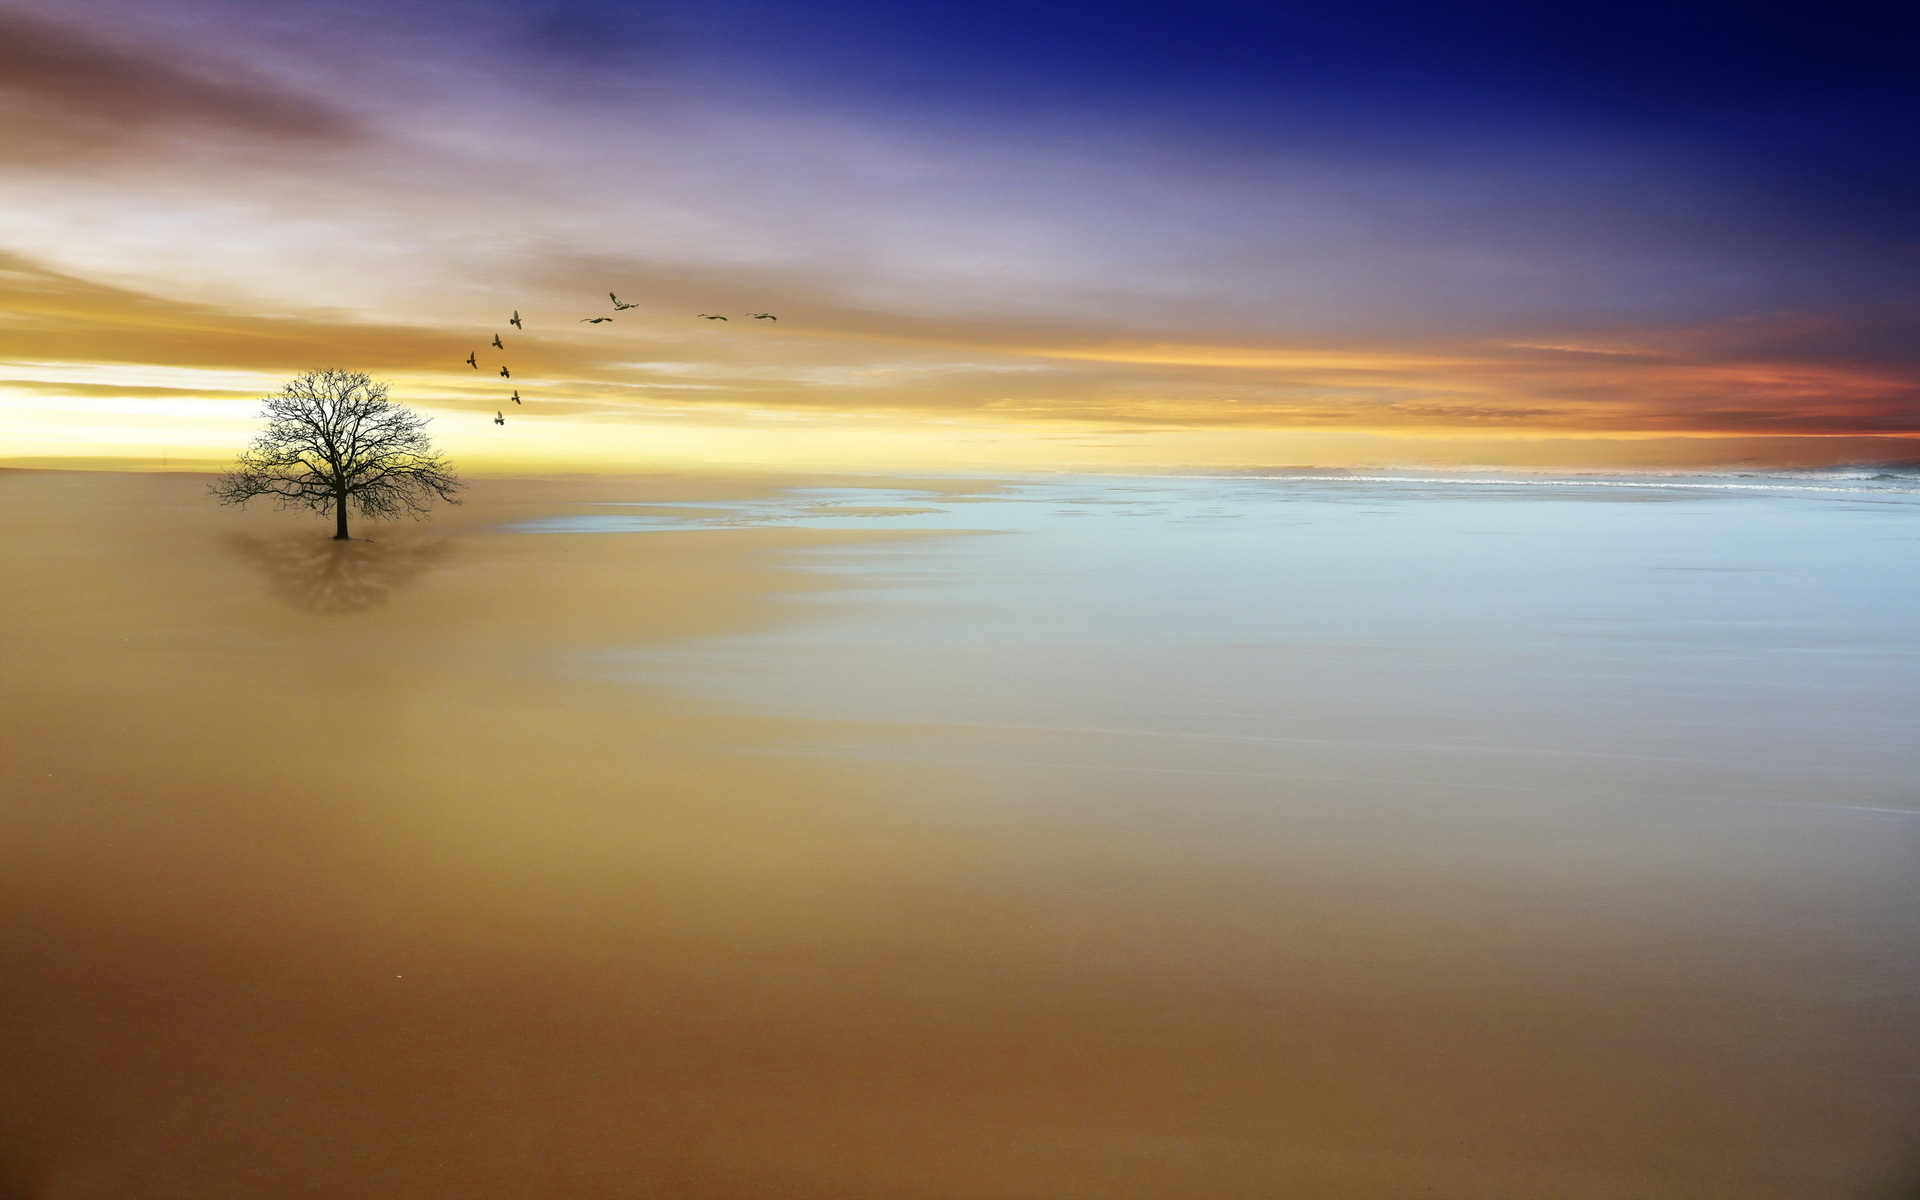 tranquility wallpaper forwallpapercom - photo #14